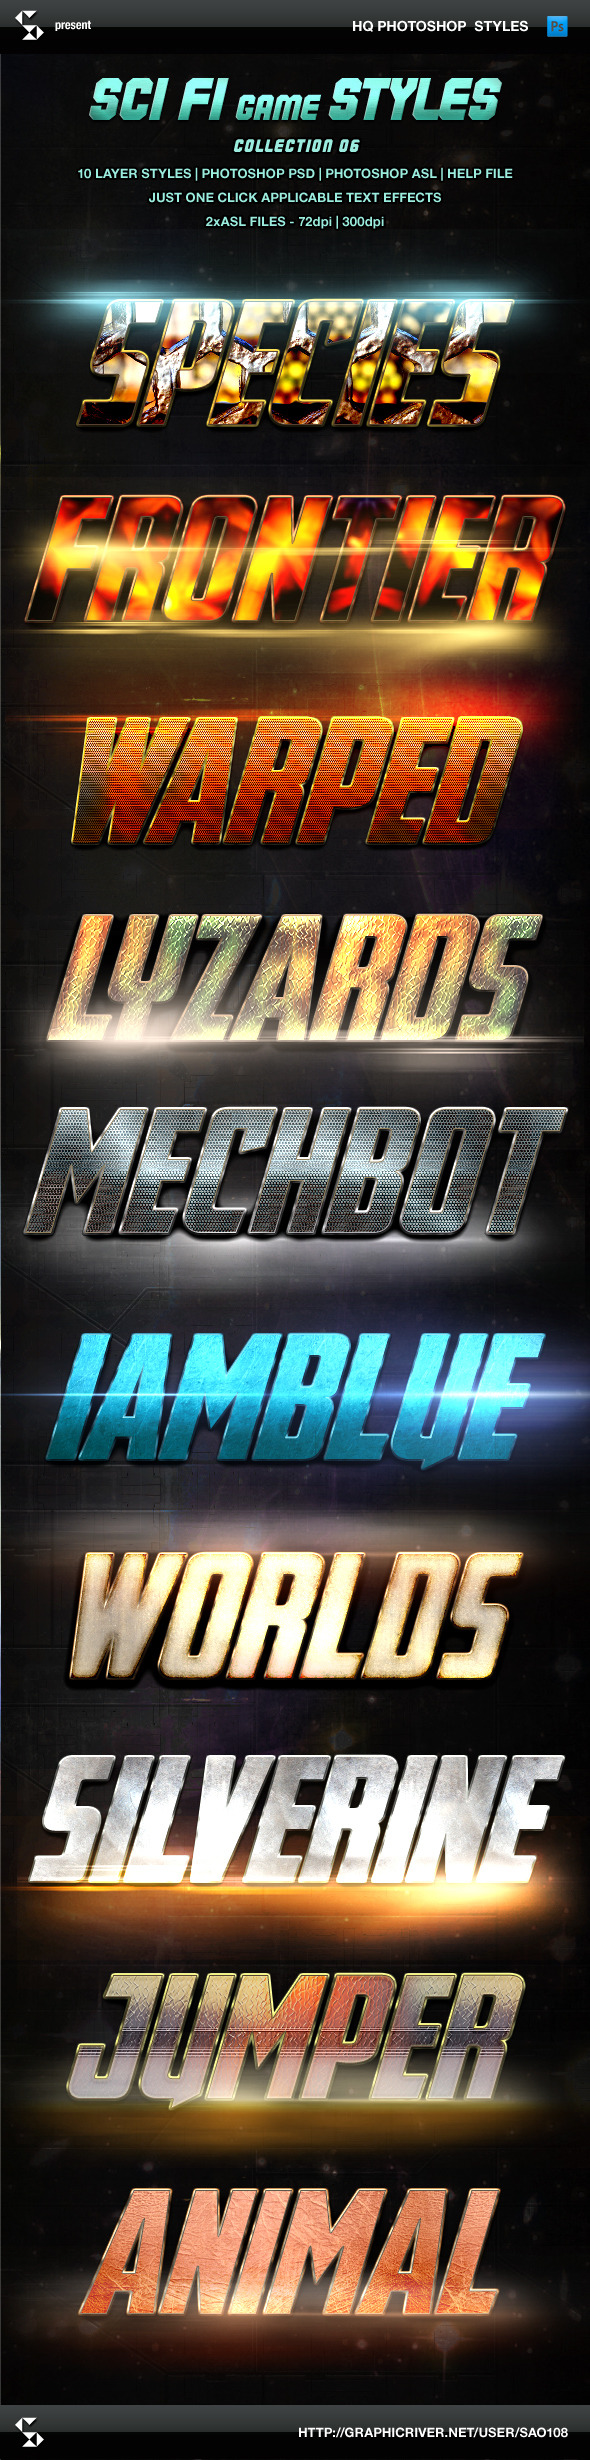 Sci-fi Game Styles - Collection 6 - Text Effects Styles